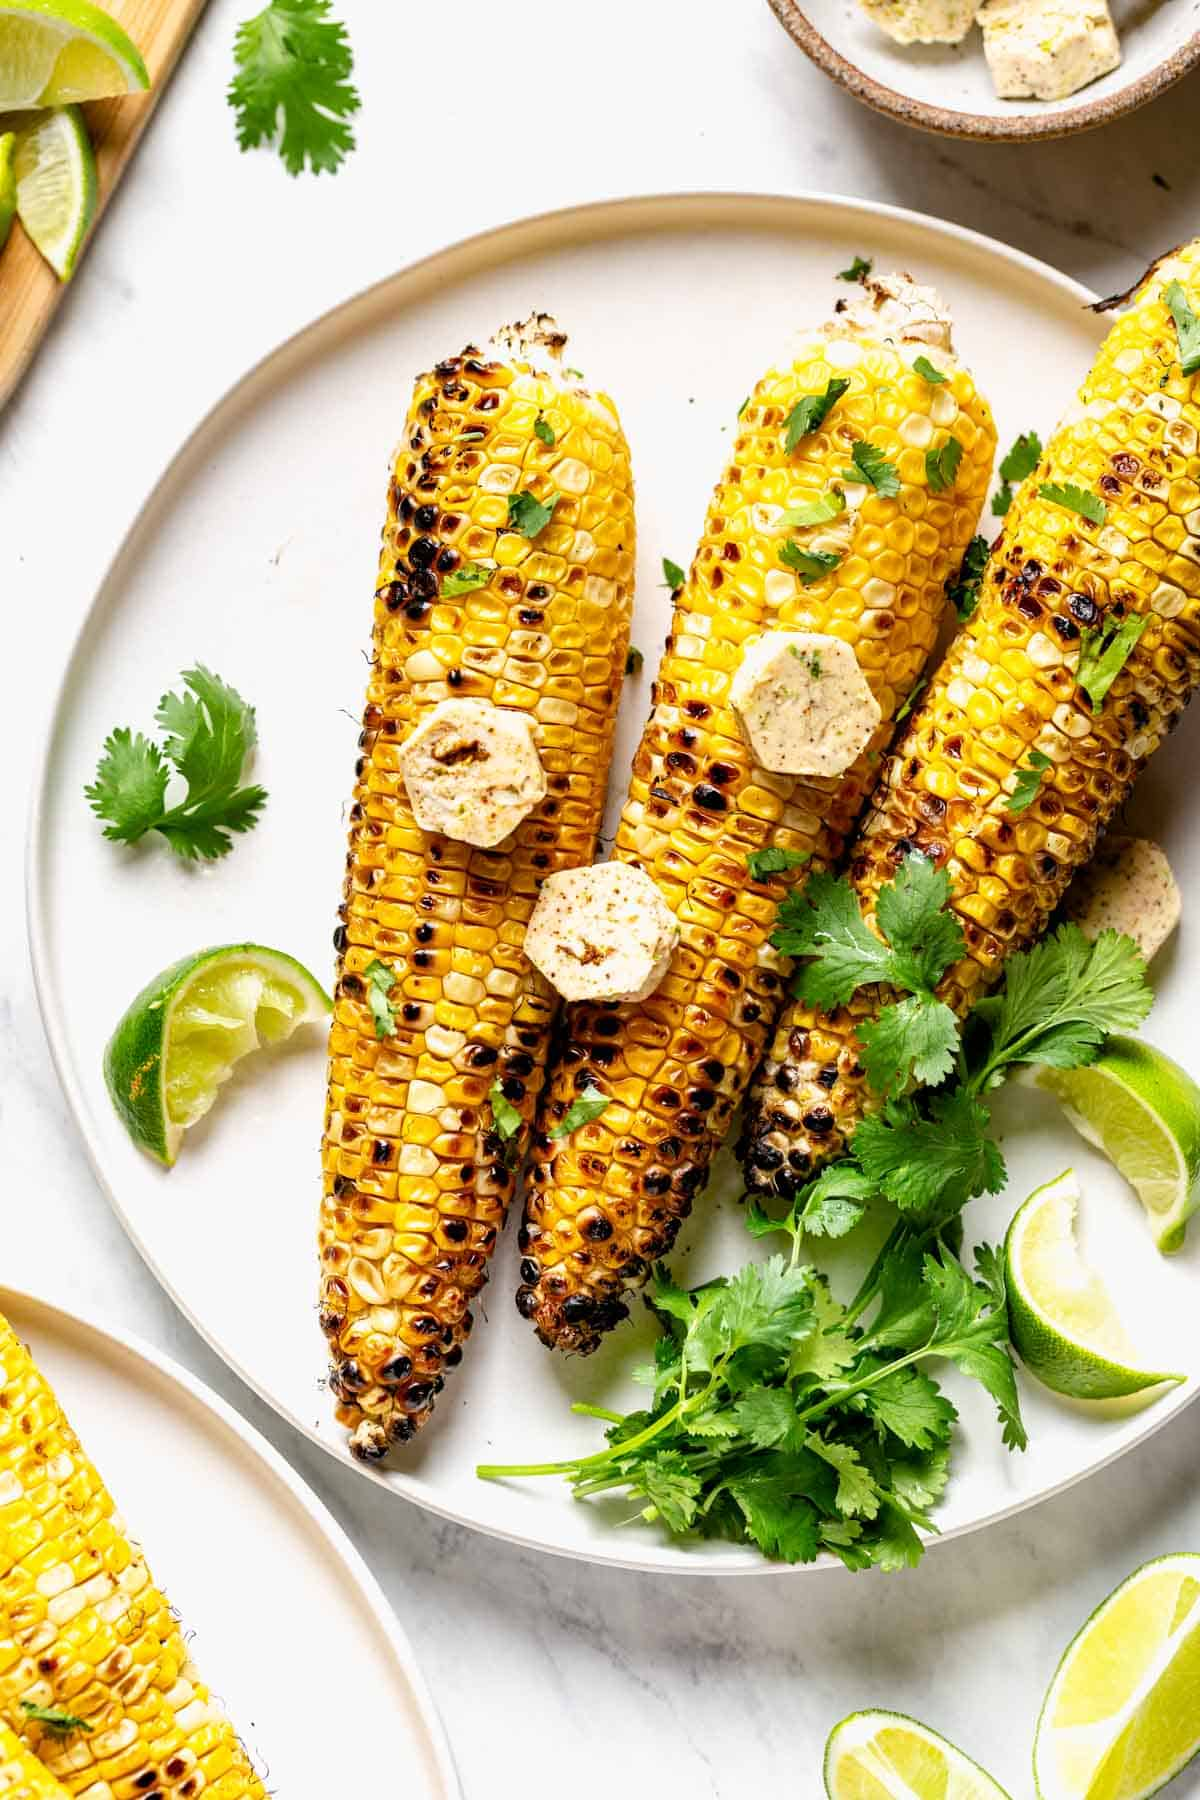 Grilled Corn with compound butter on it